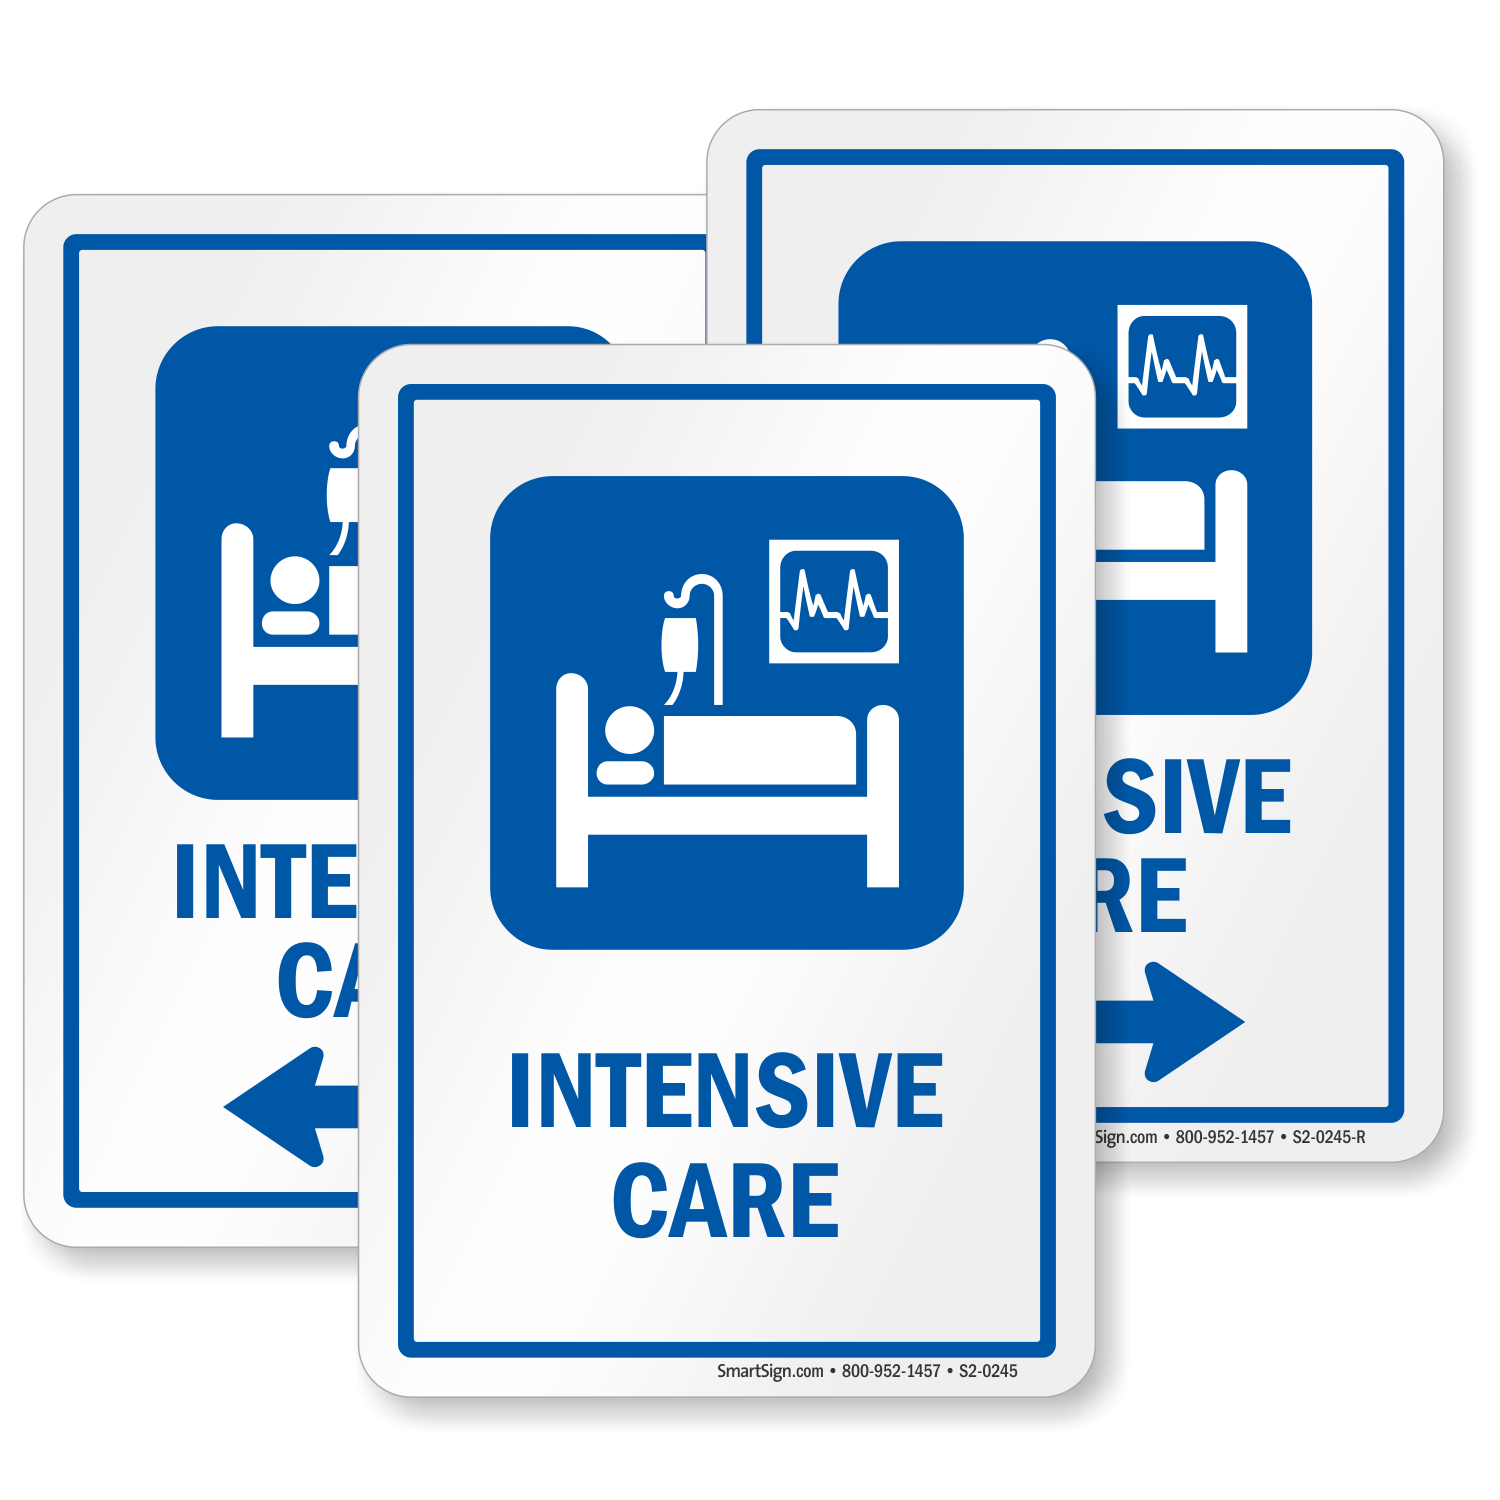 24 hours of intensive care 10